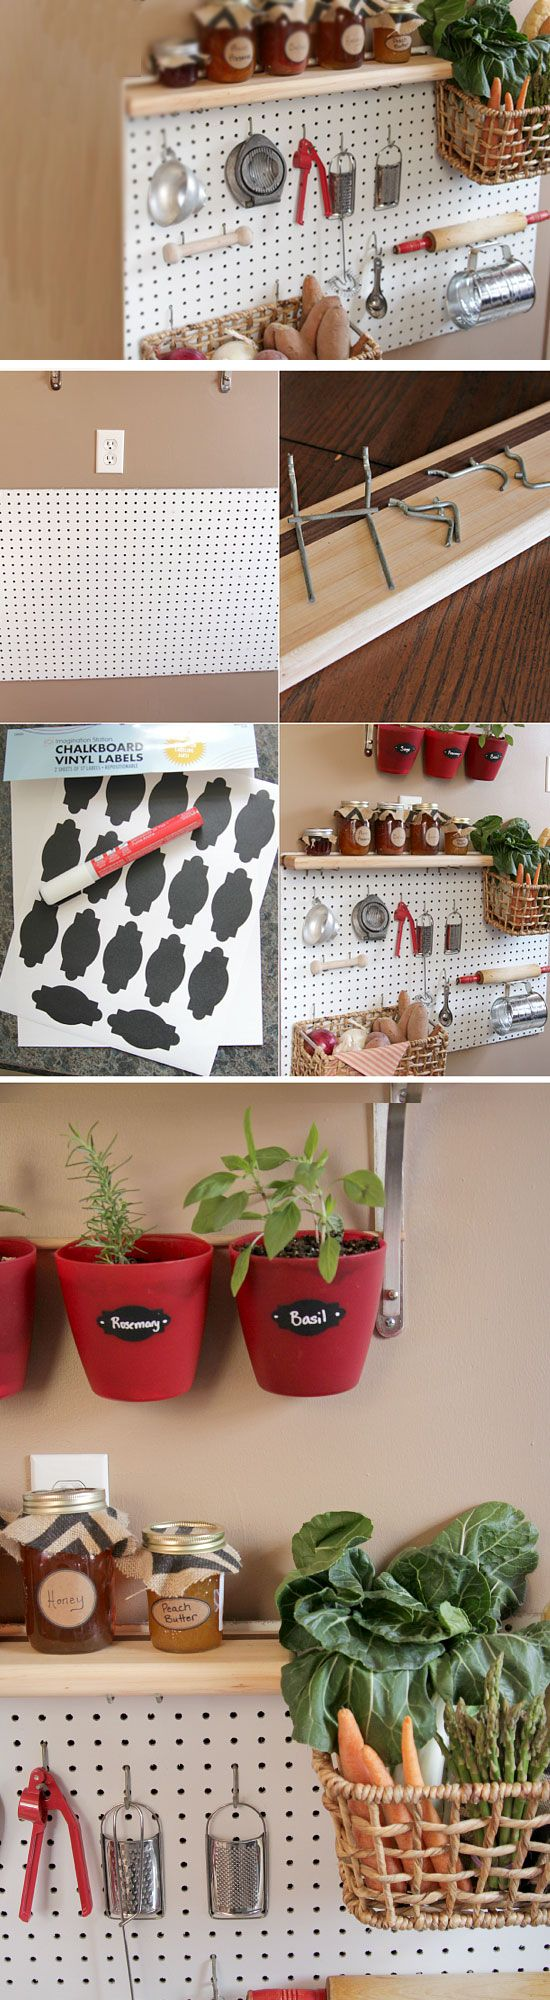 Pegboard Storage System | Click Pick for 24 DIY Organization Ideas for The Home | DIY Storage Ideas for Small Spaces